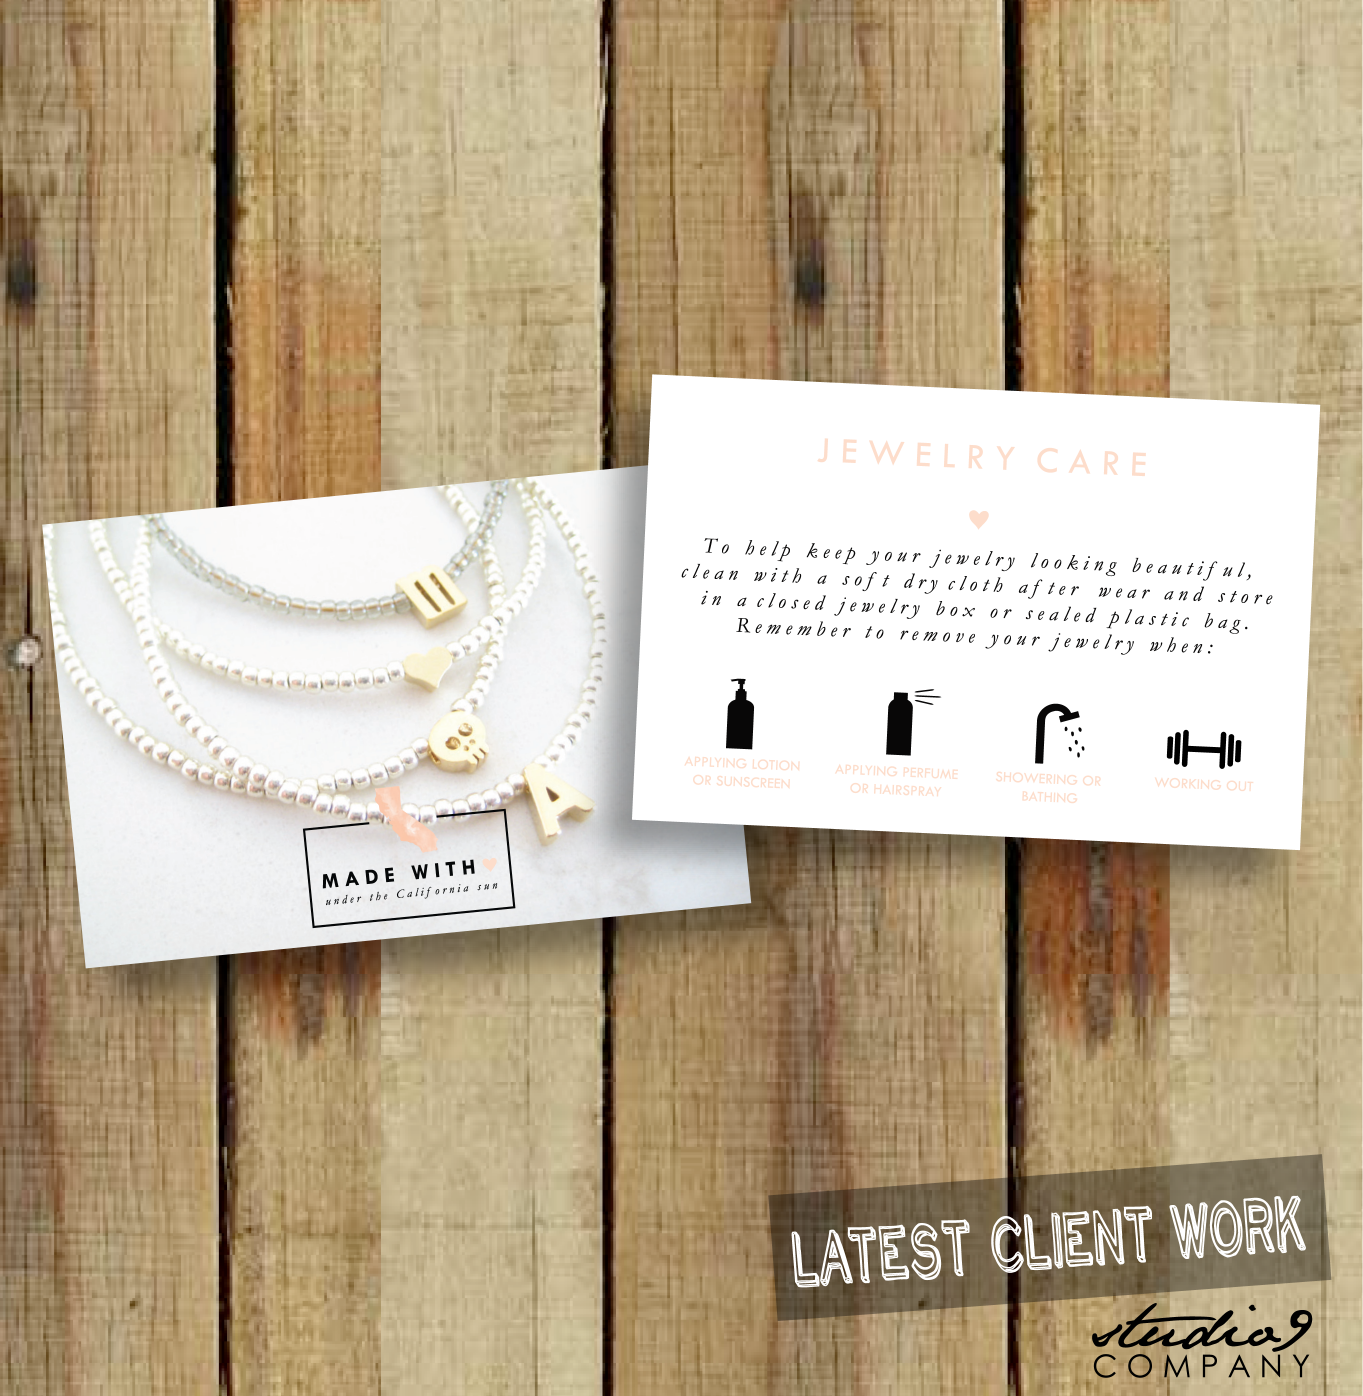 Graphic Design Studio By Studio9co On Etsy Jewelry Business Card Jewelry Care Handmade Jewelry Business